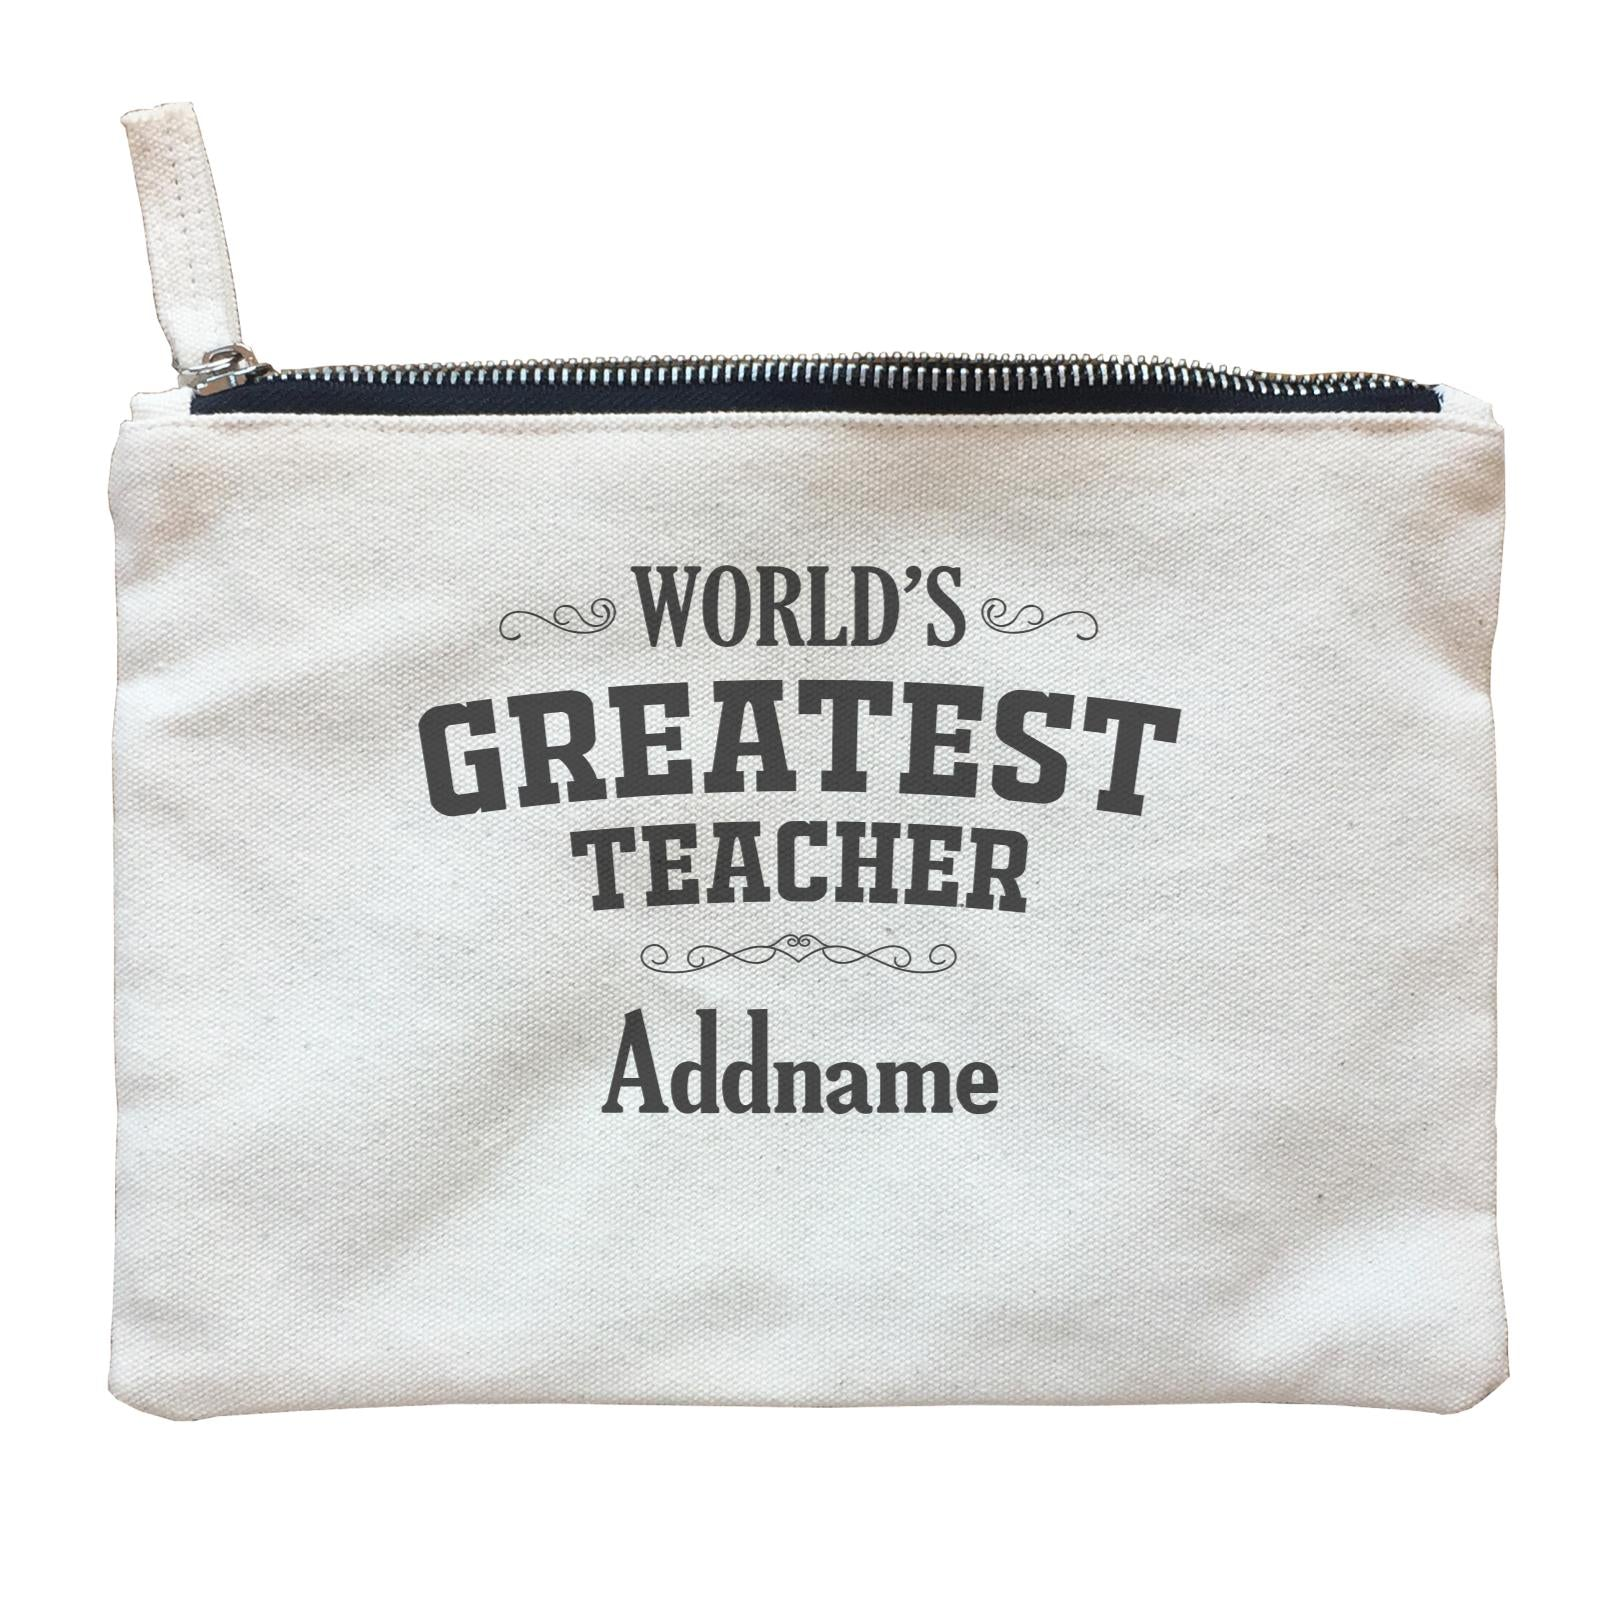 Great Teachers World's Greatest Teacher Addname Zipper Pouch